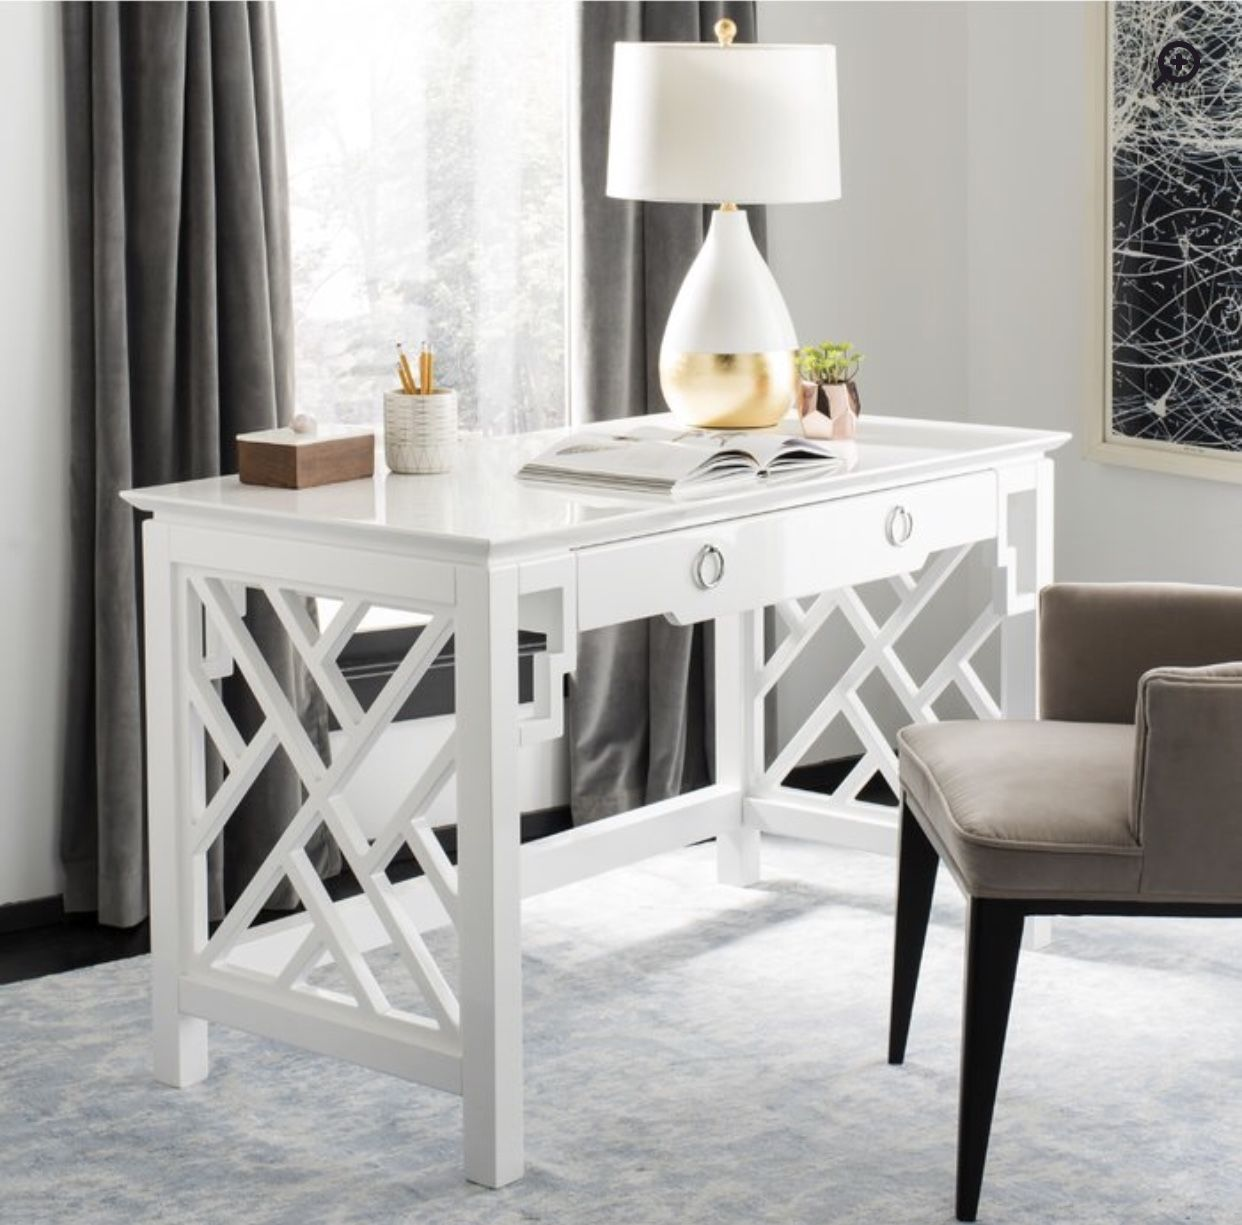 Pin by KC on Home and Garden White desk bedroom, Desk